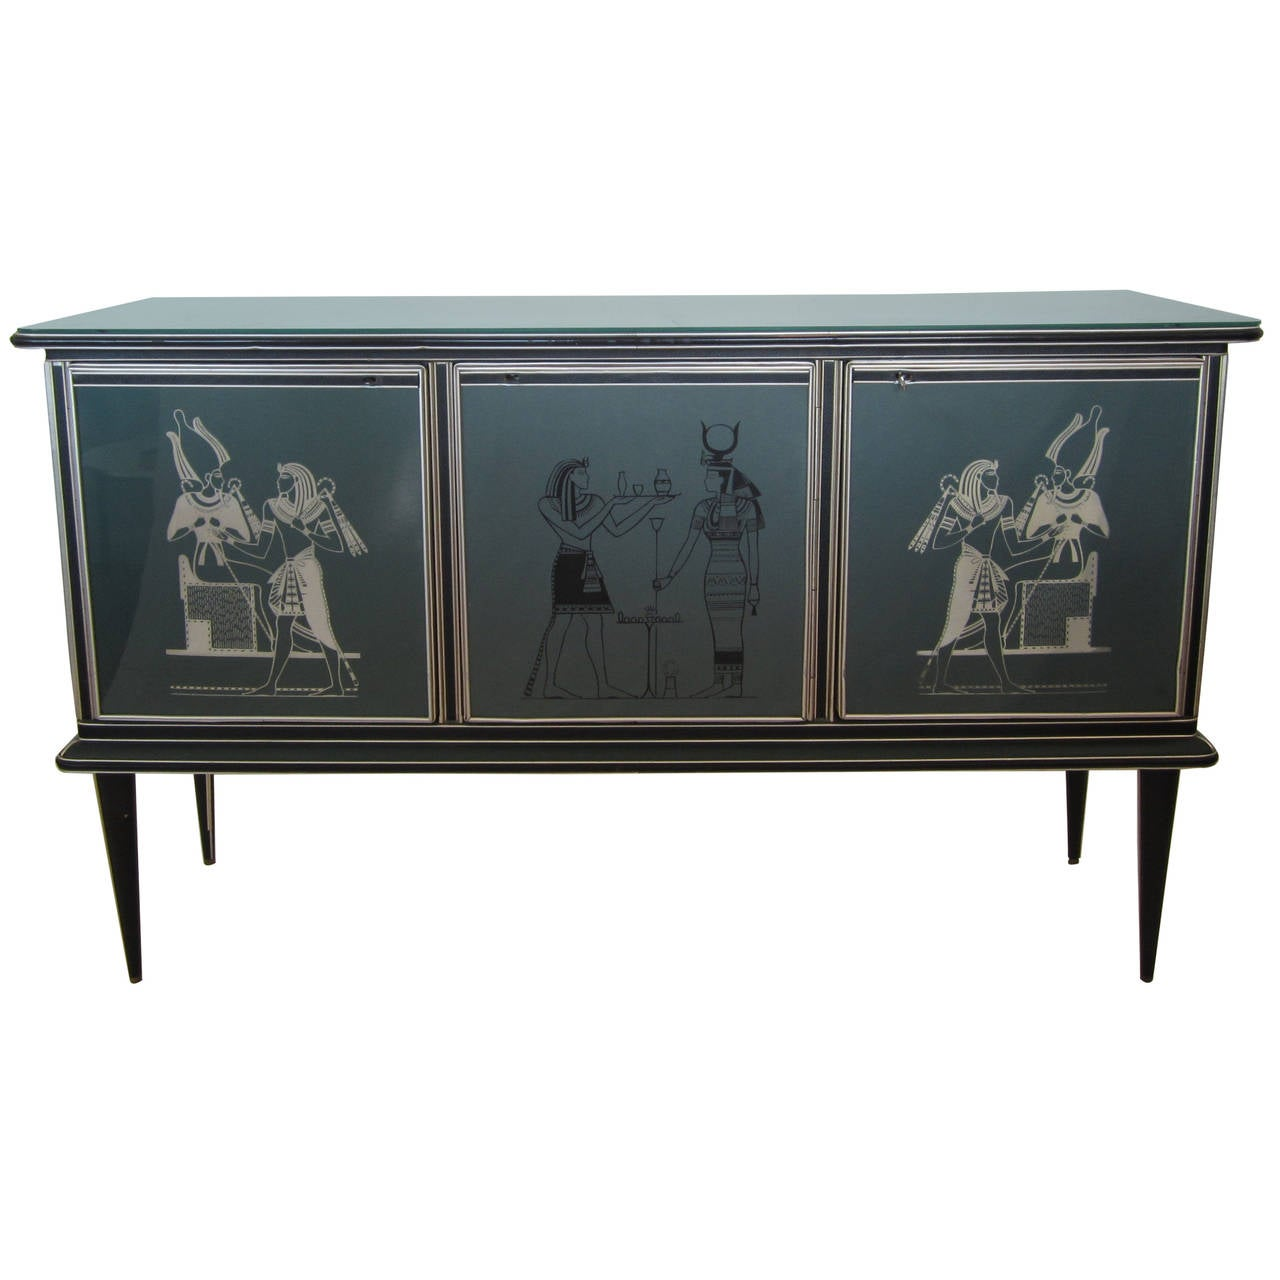 Italian Glass Front Credenza By Umberto Mascagni At 1stdibs